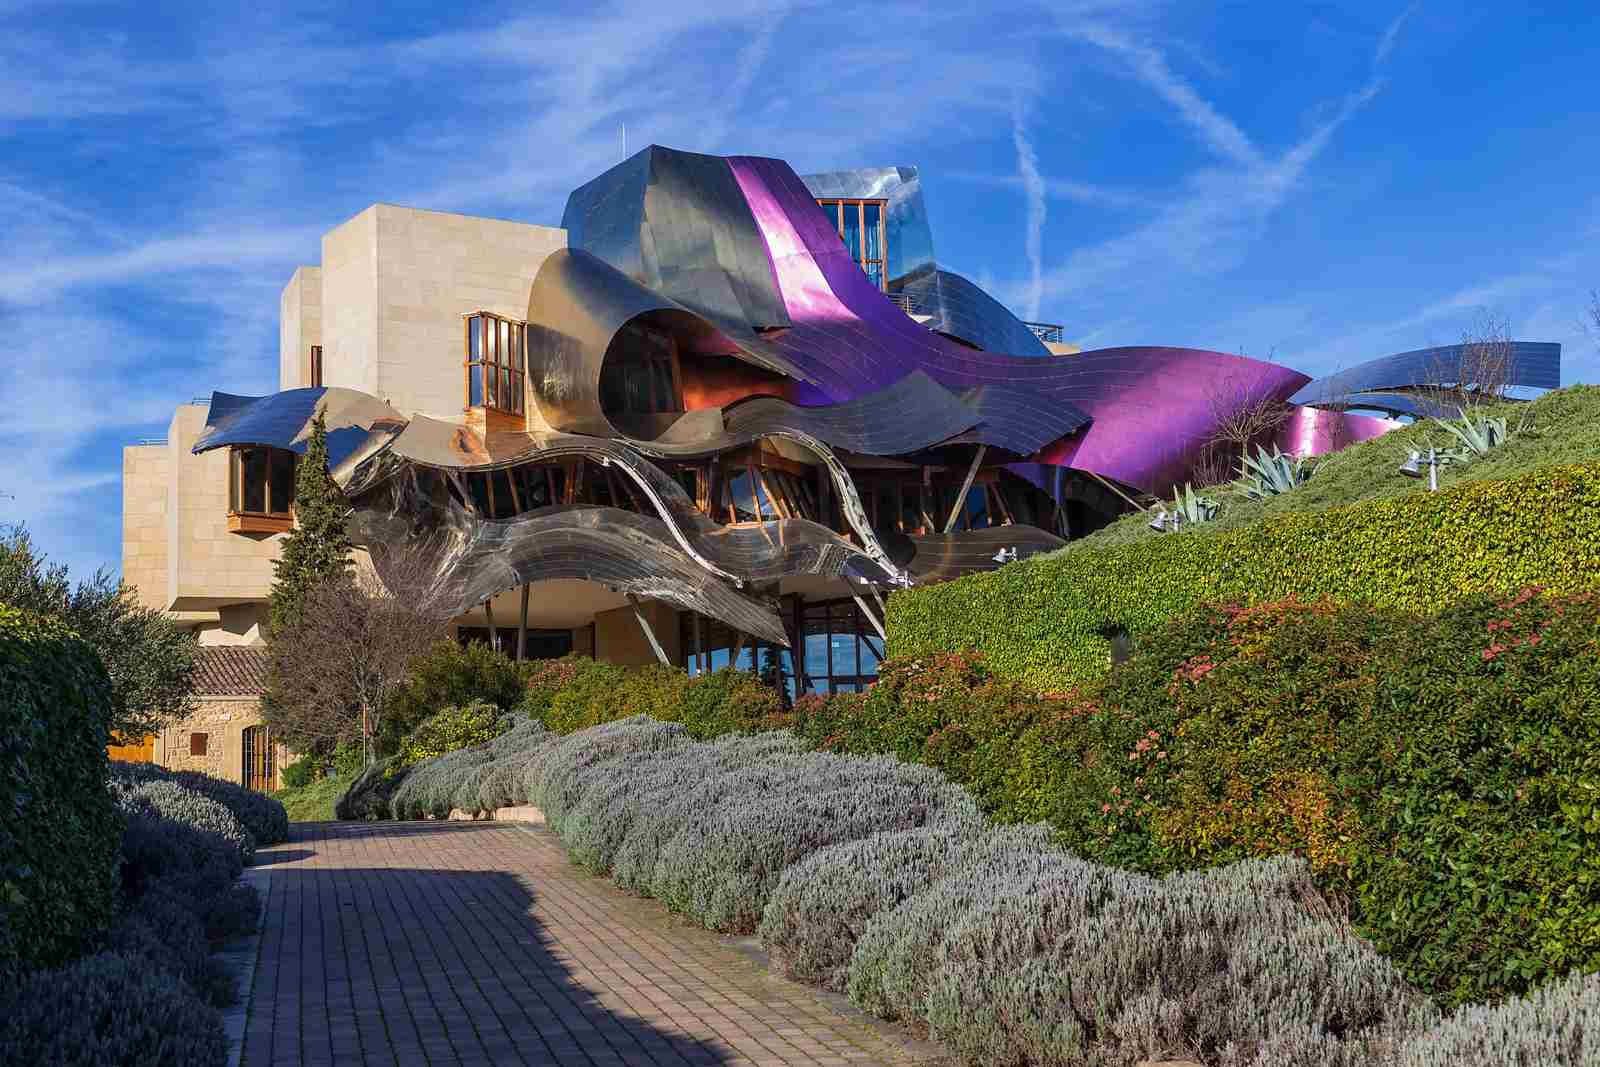 Marques de Riscal Hotel, a Frank Ghery building, Spain